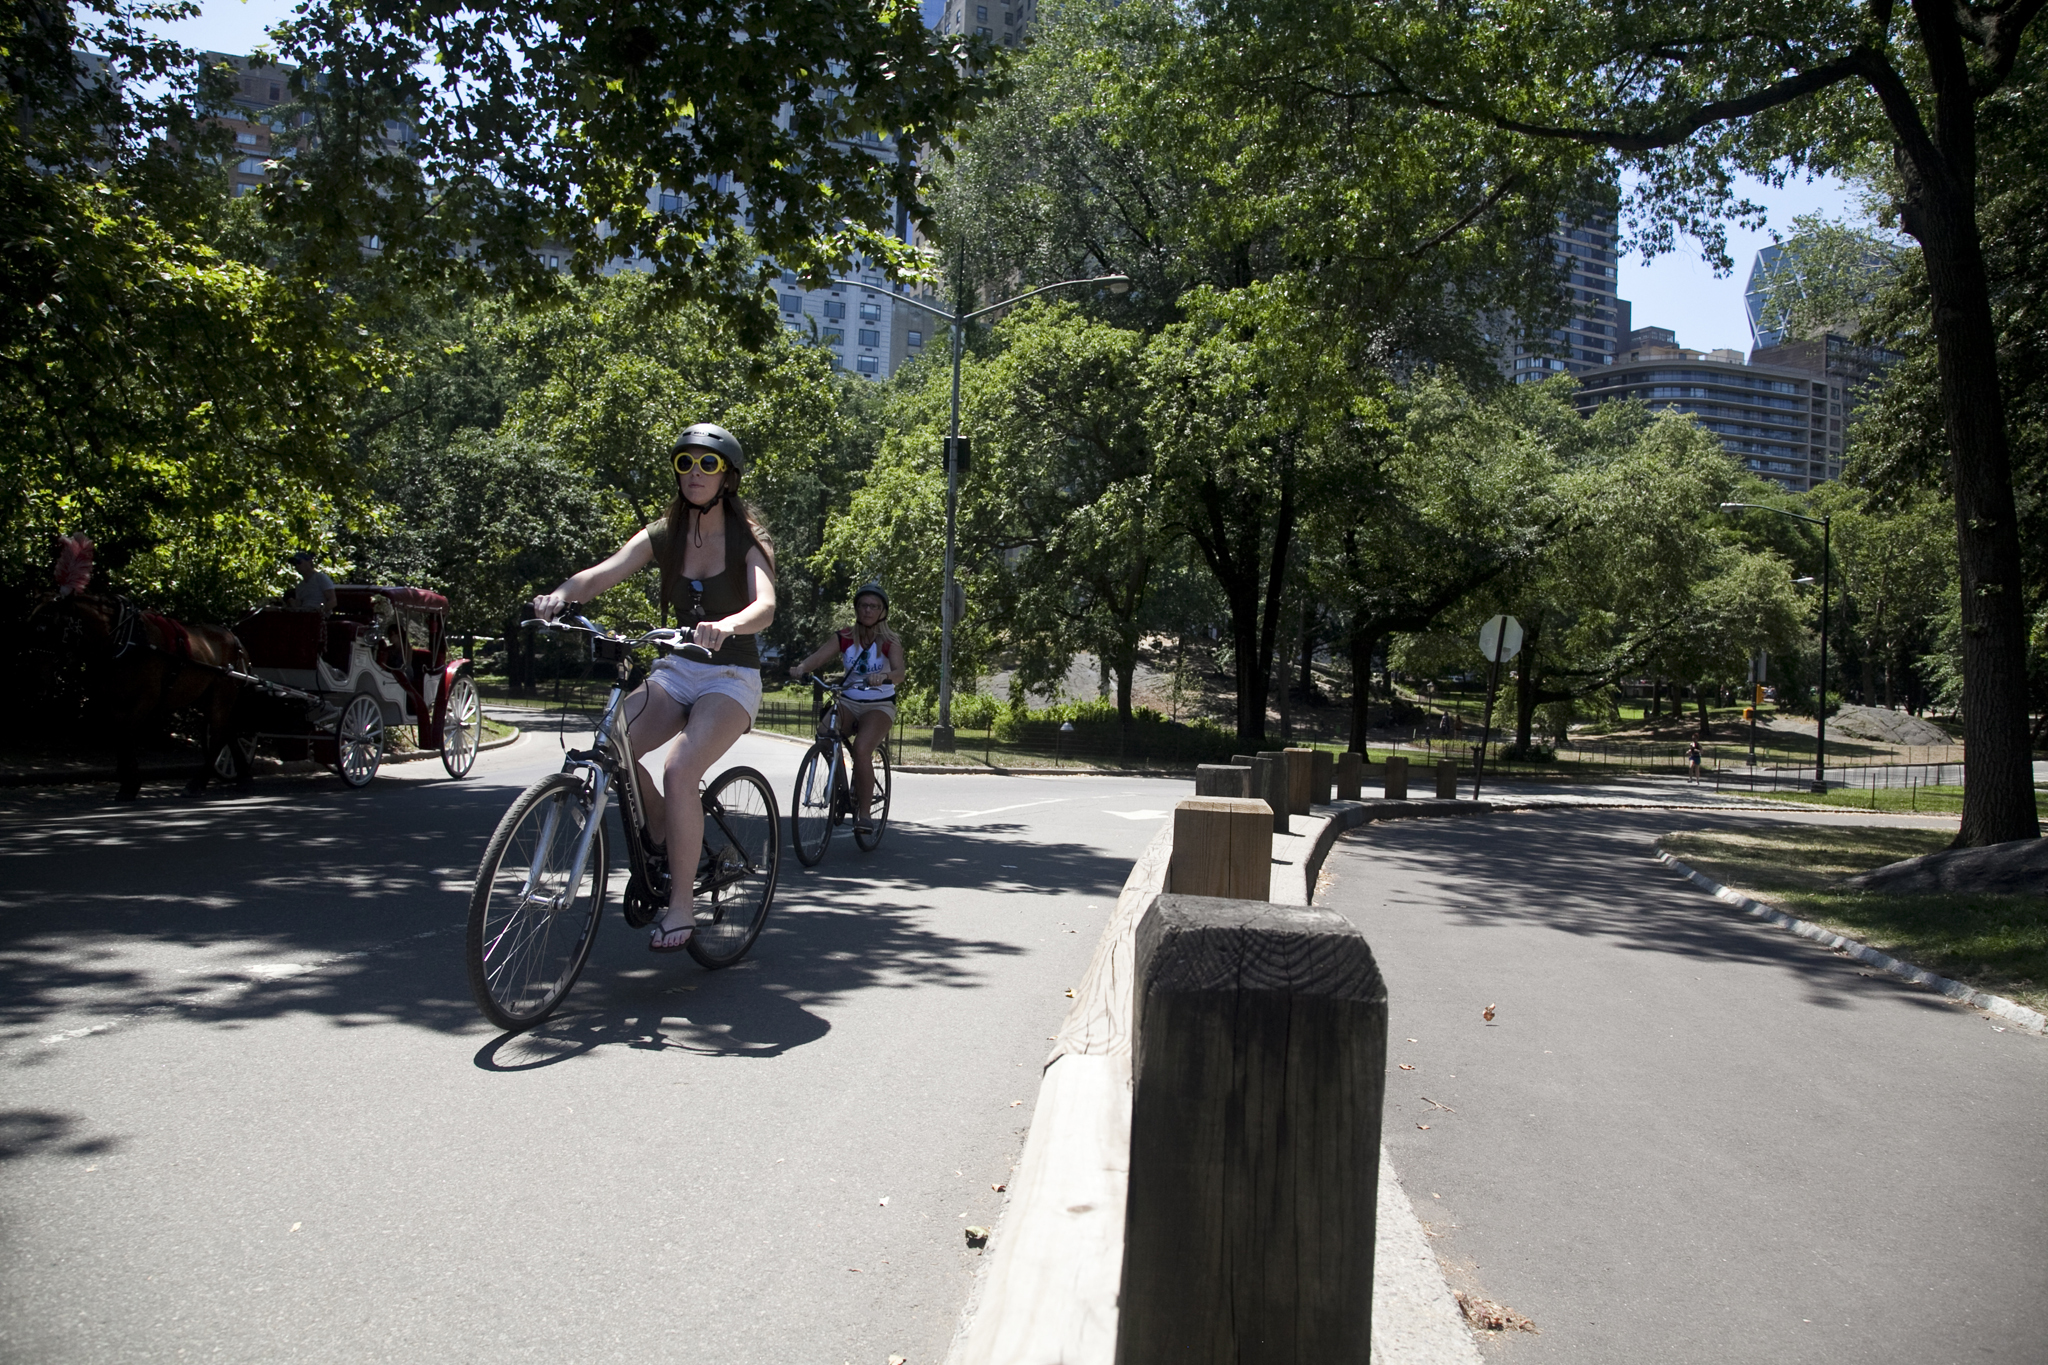 Bike paths and bike lanes for traffic-free cycle rides in New York